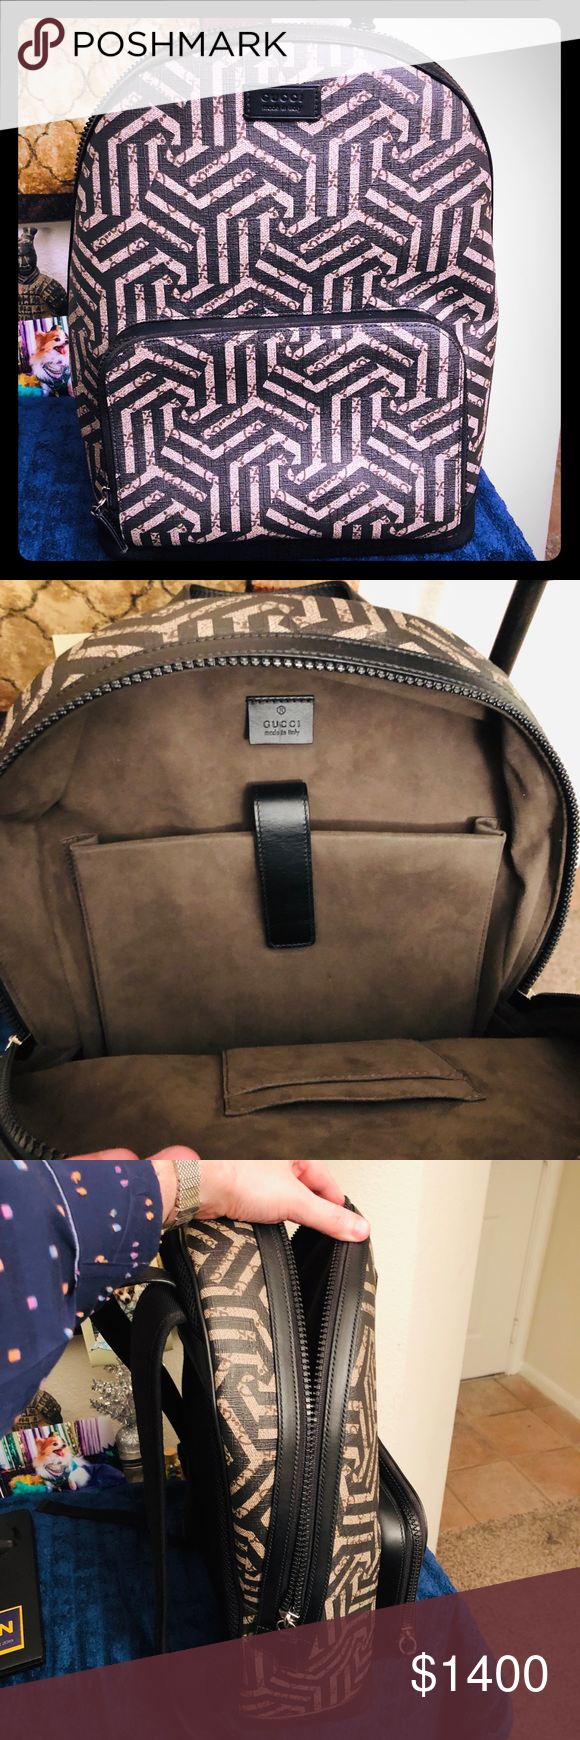 e378627f25e3 Gucci GG Caleido Canvas Backpack Black & Brown Gently used in mint  condition Backpack Only Gucci